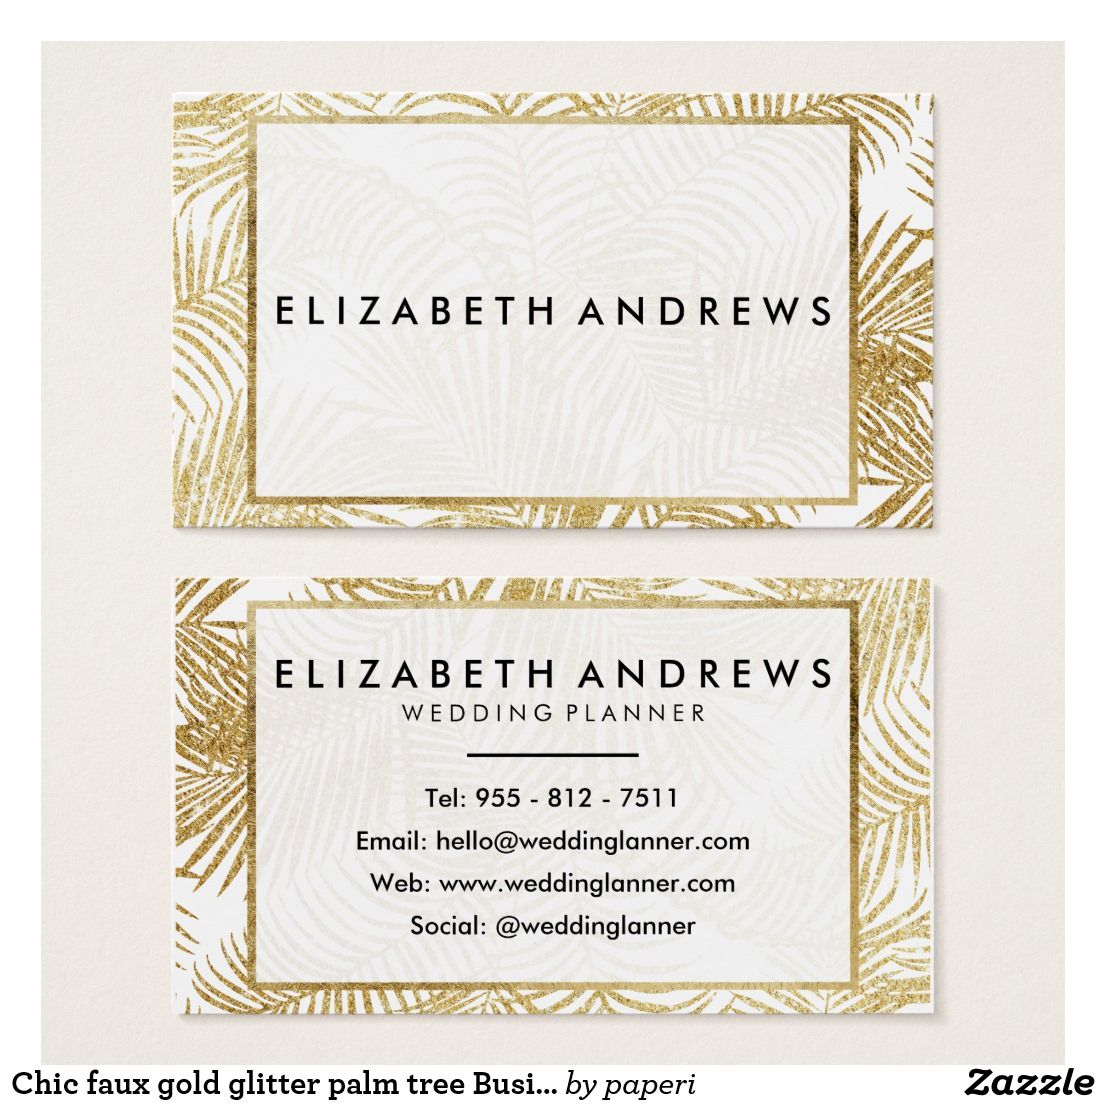 Chic faux gold glitter palm tree business cards gold glitter chic faux gold glitter palm tree business cards colourmoves